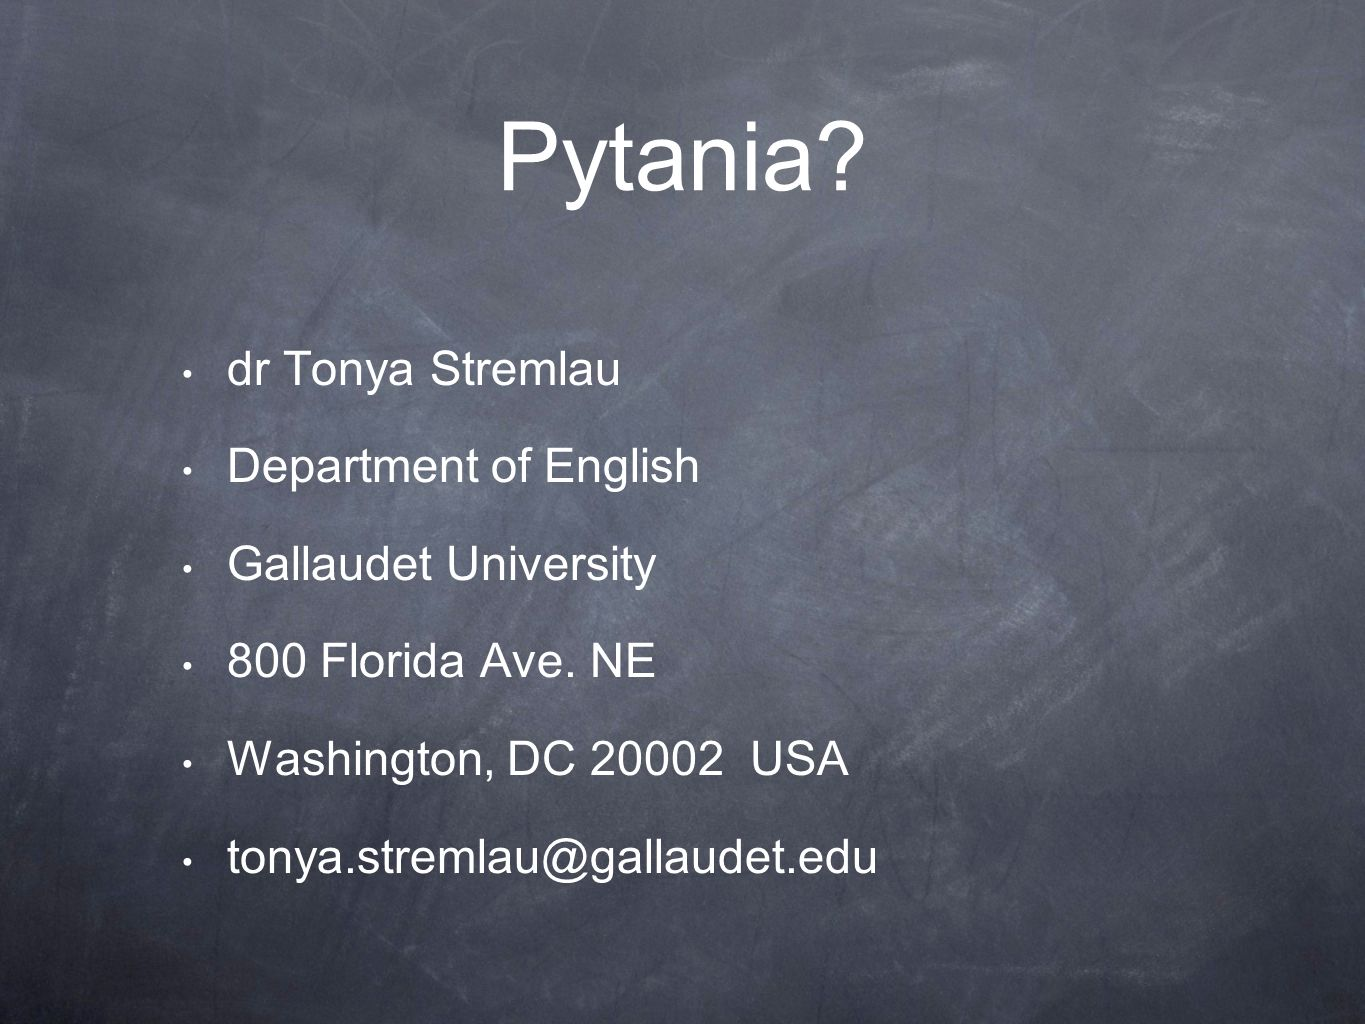 Pytania dr Tonya Stremlau Department of English Gallaudet University